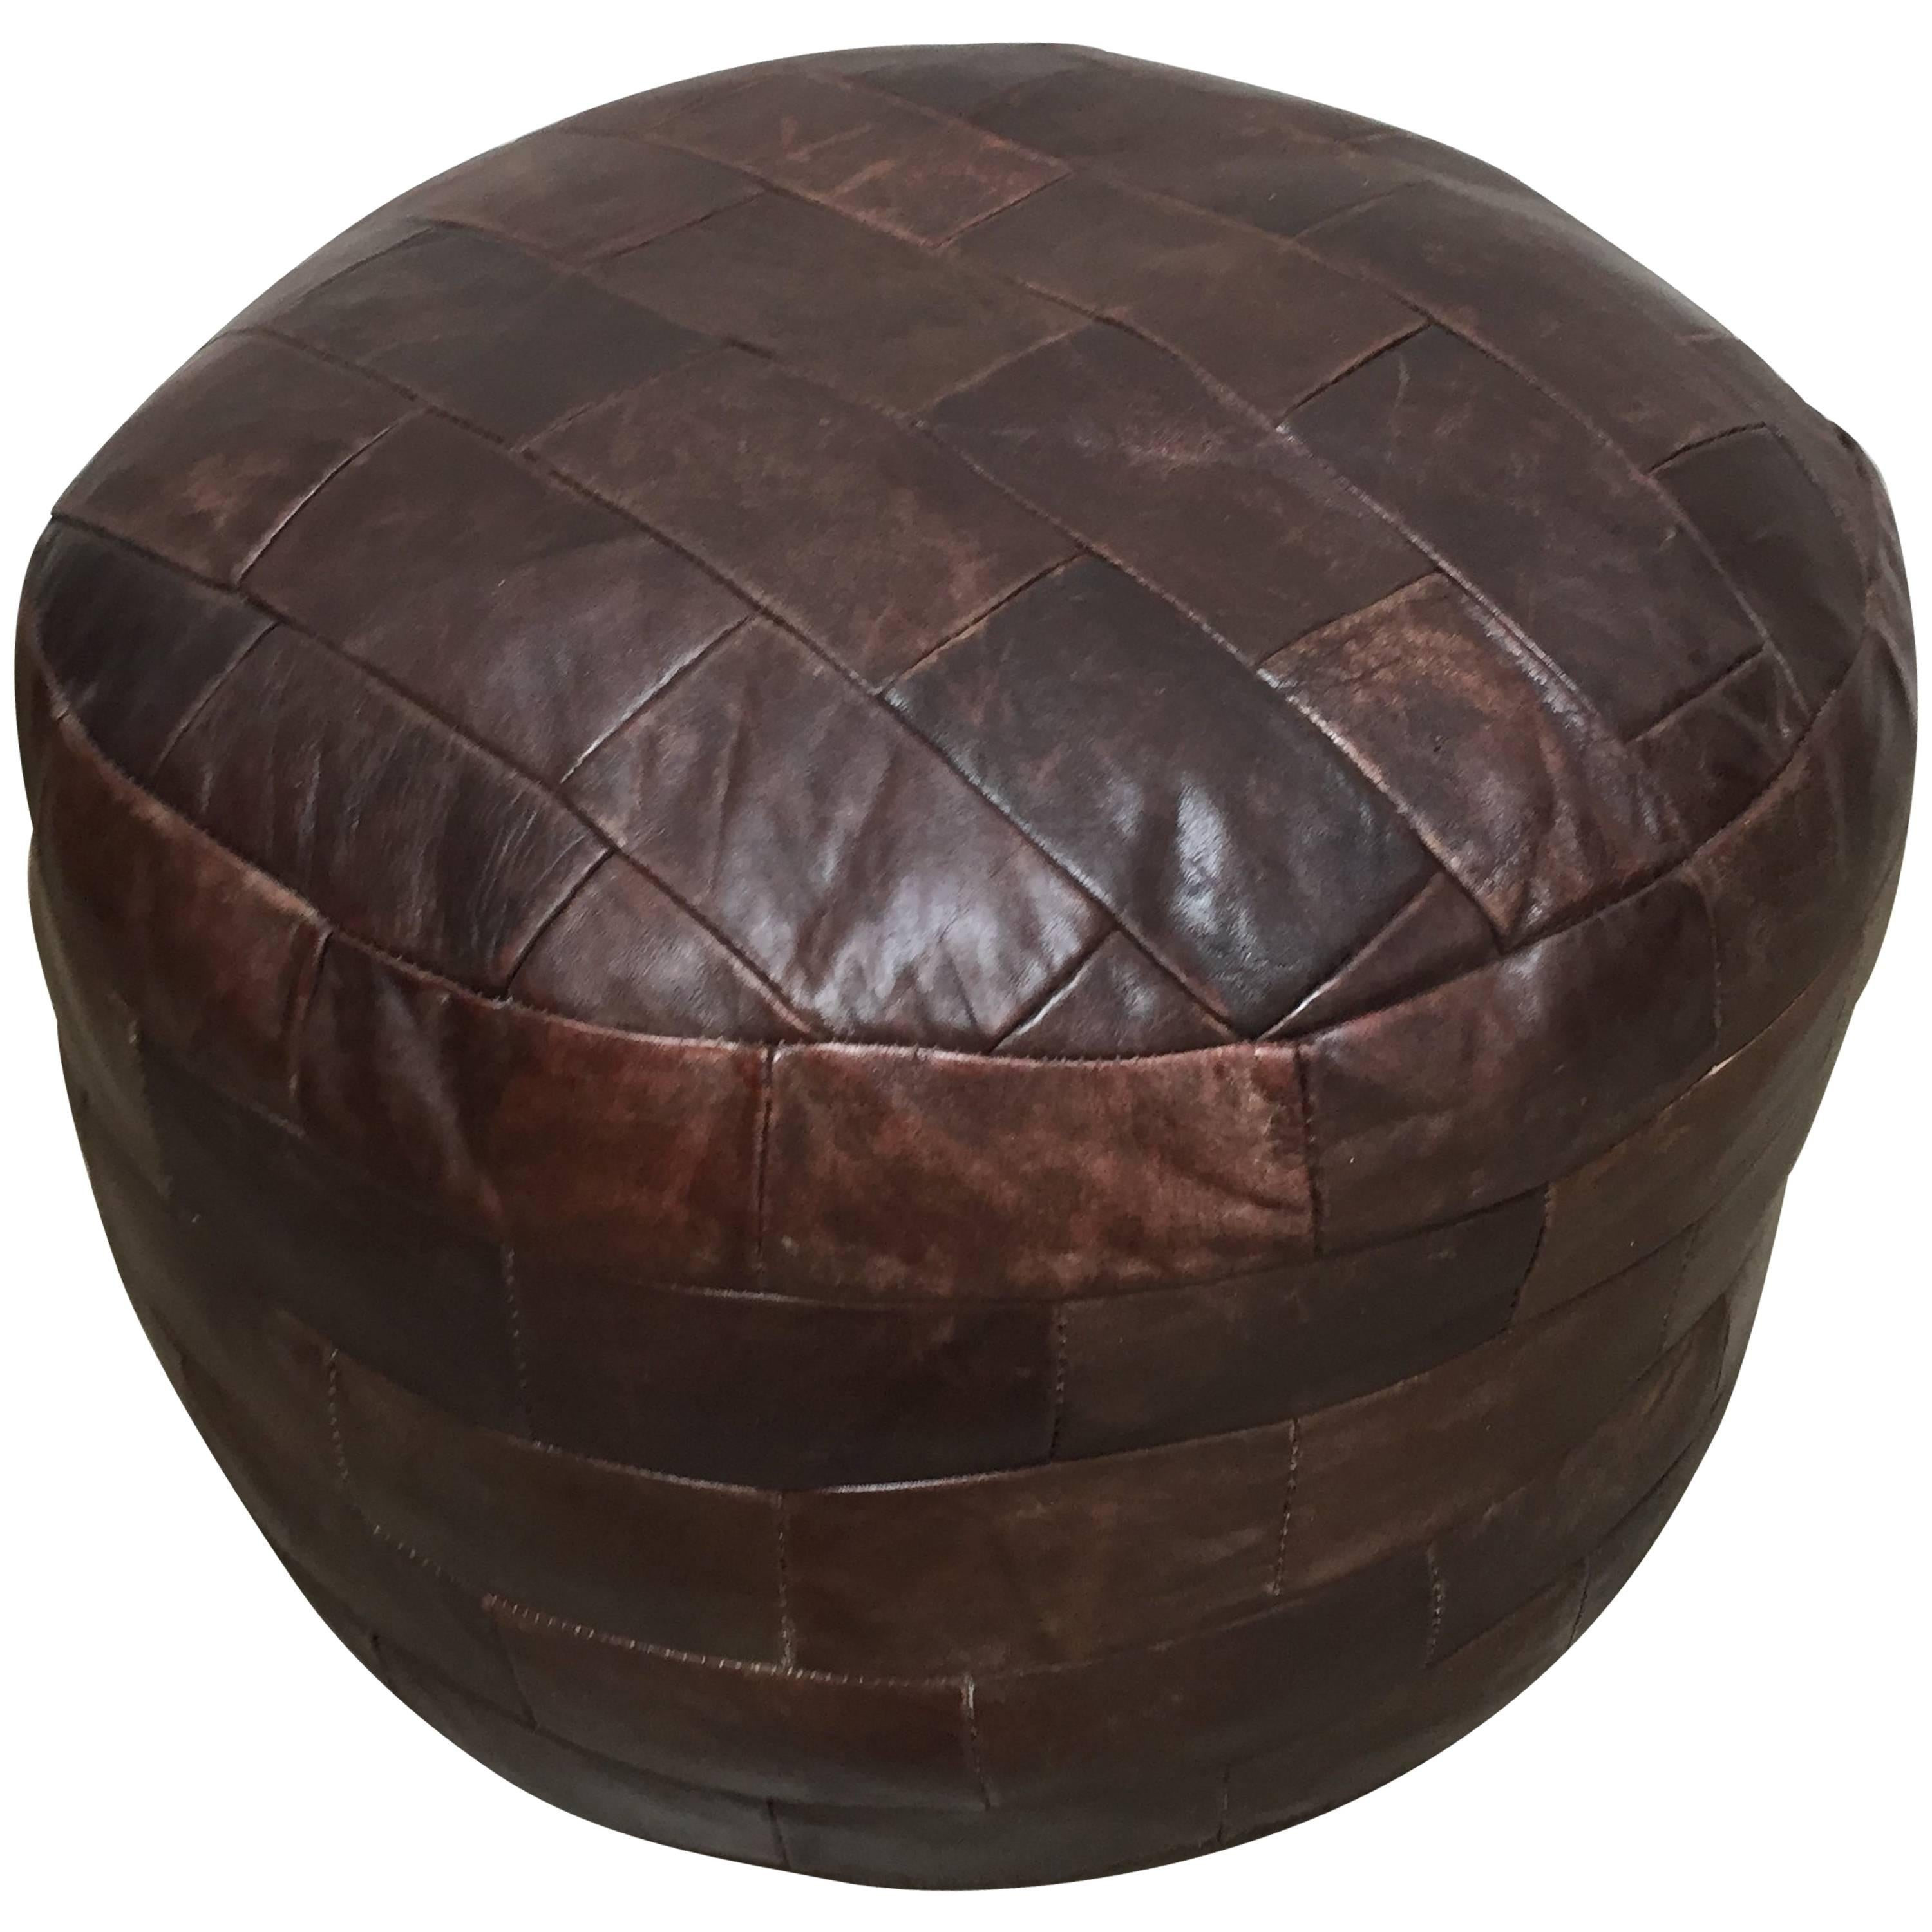 de sede brown leather ottoman - Brown Leather Ottoman